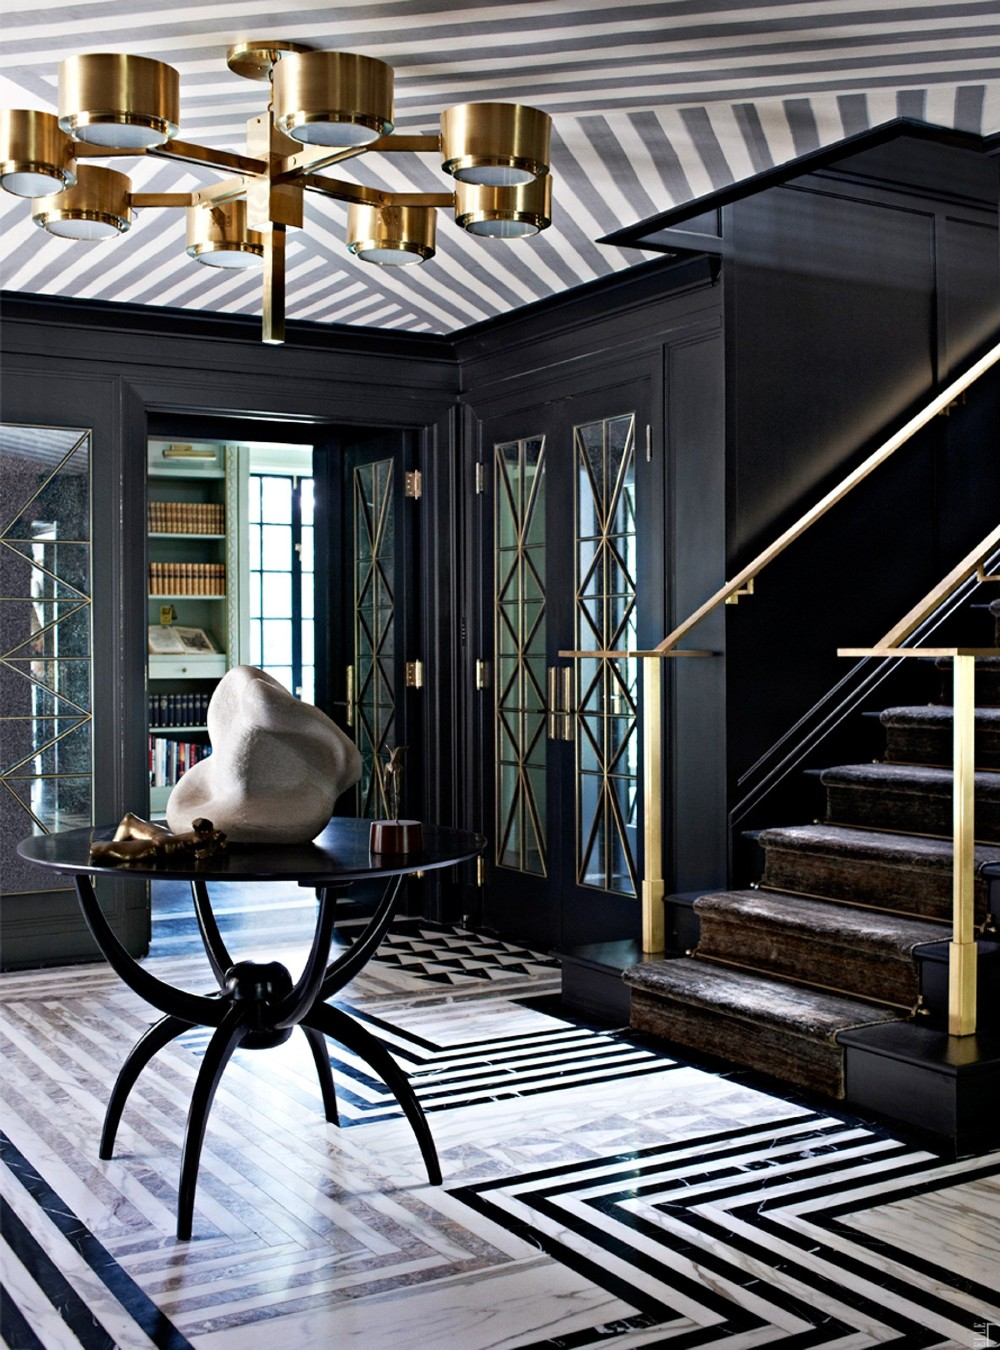 entryway lighting ideas 22 Outrageously Stunning Entryway Lighting Ideas 22 Outrageously Stunning Entryway Lighting Ideas 1 14